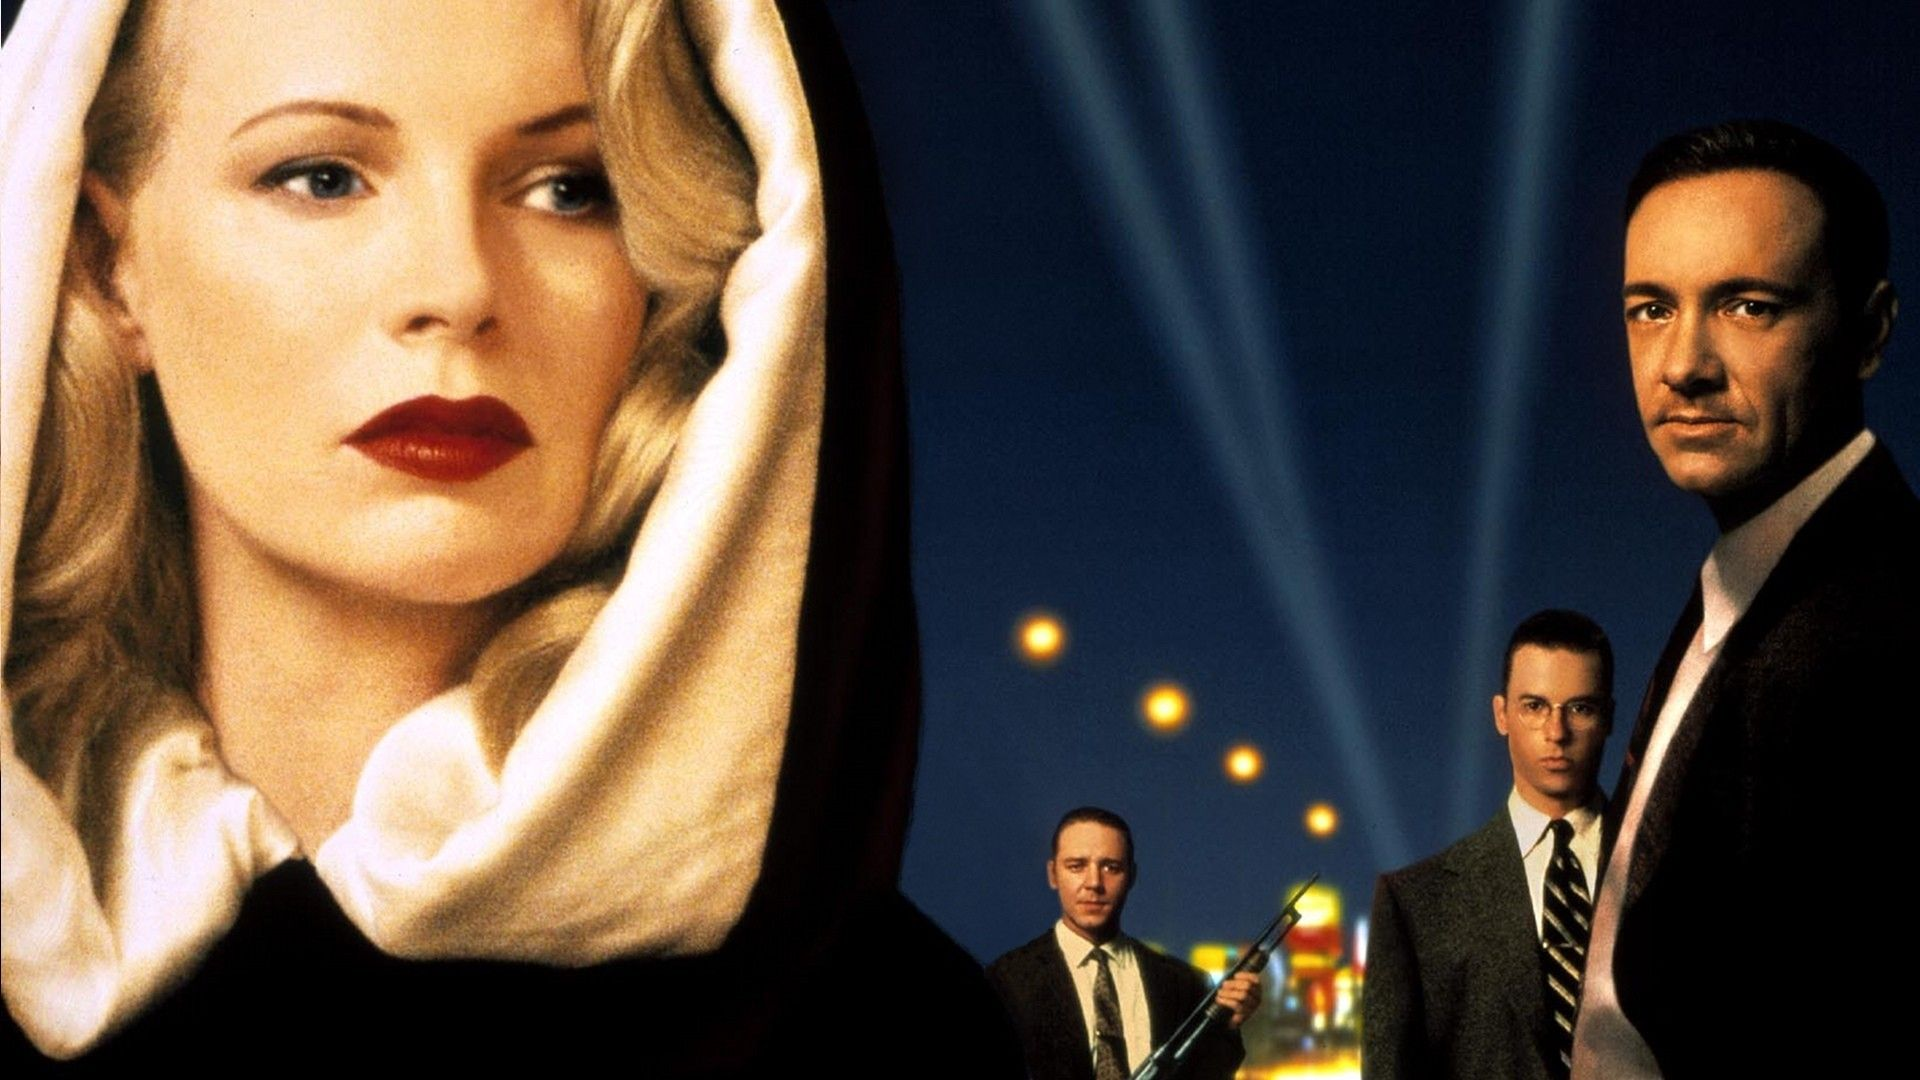 Basinger's performance in L.A. Confidential secured her an Academy Award